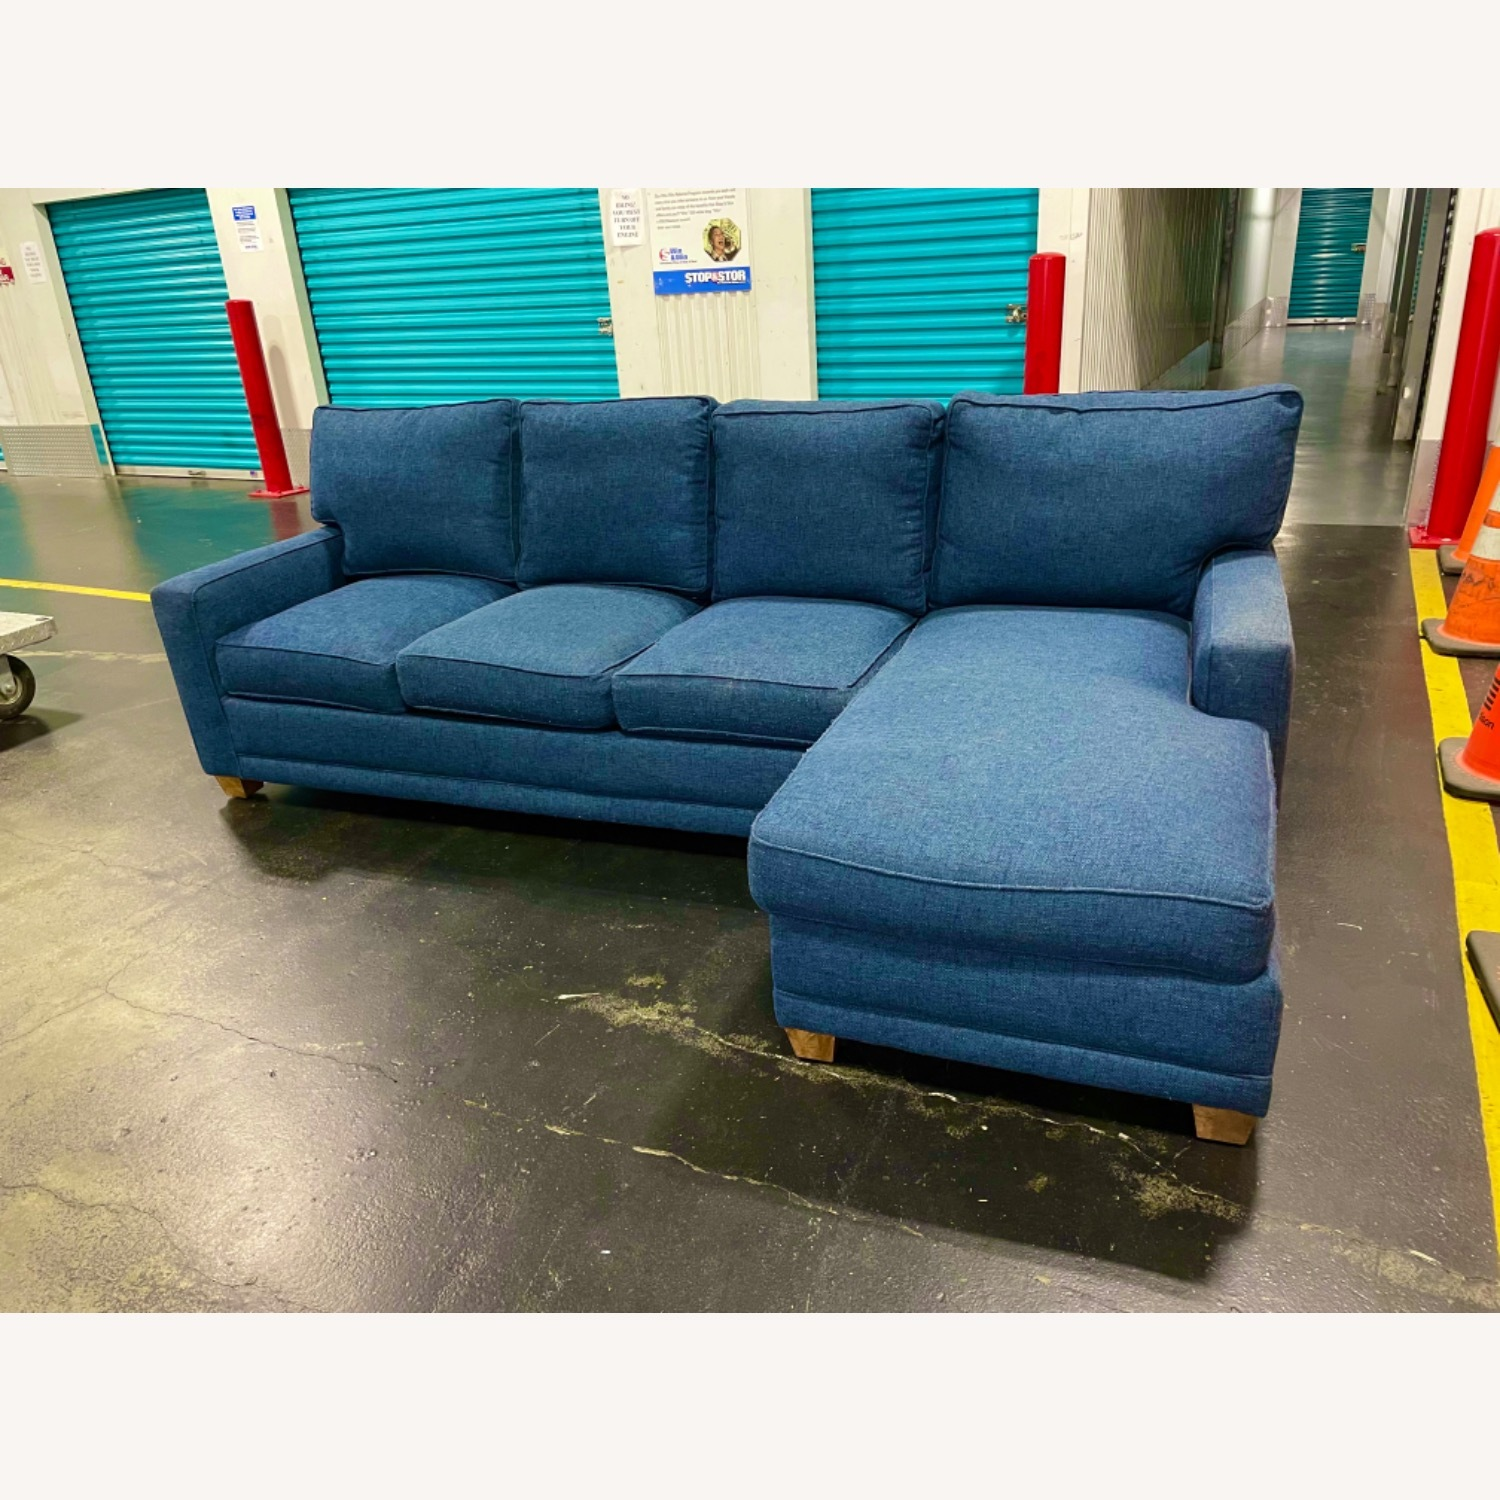 Rowe My Style 2 Piece Sectional - image-22